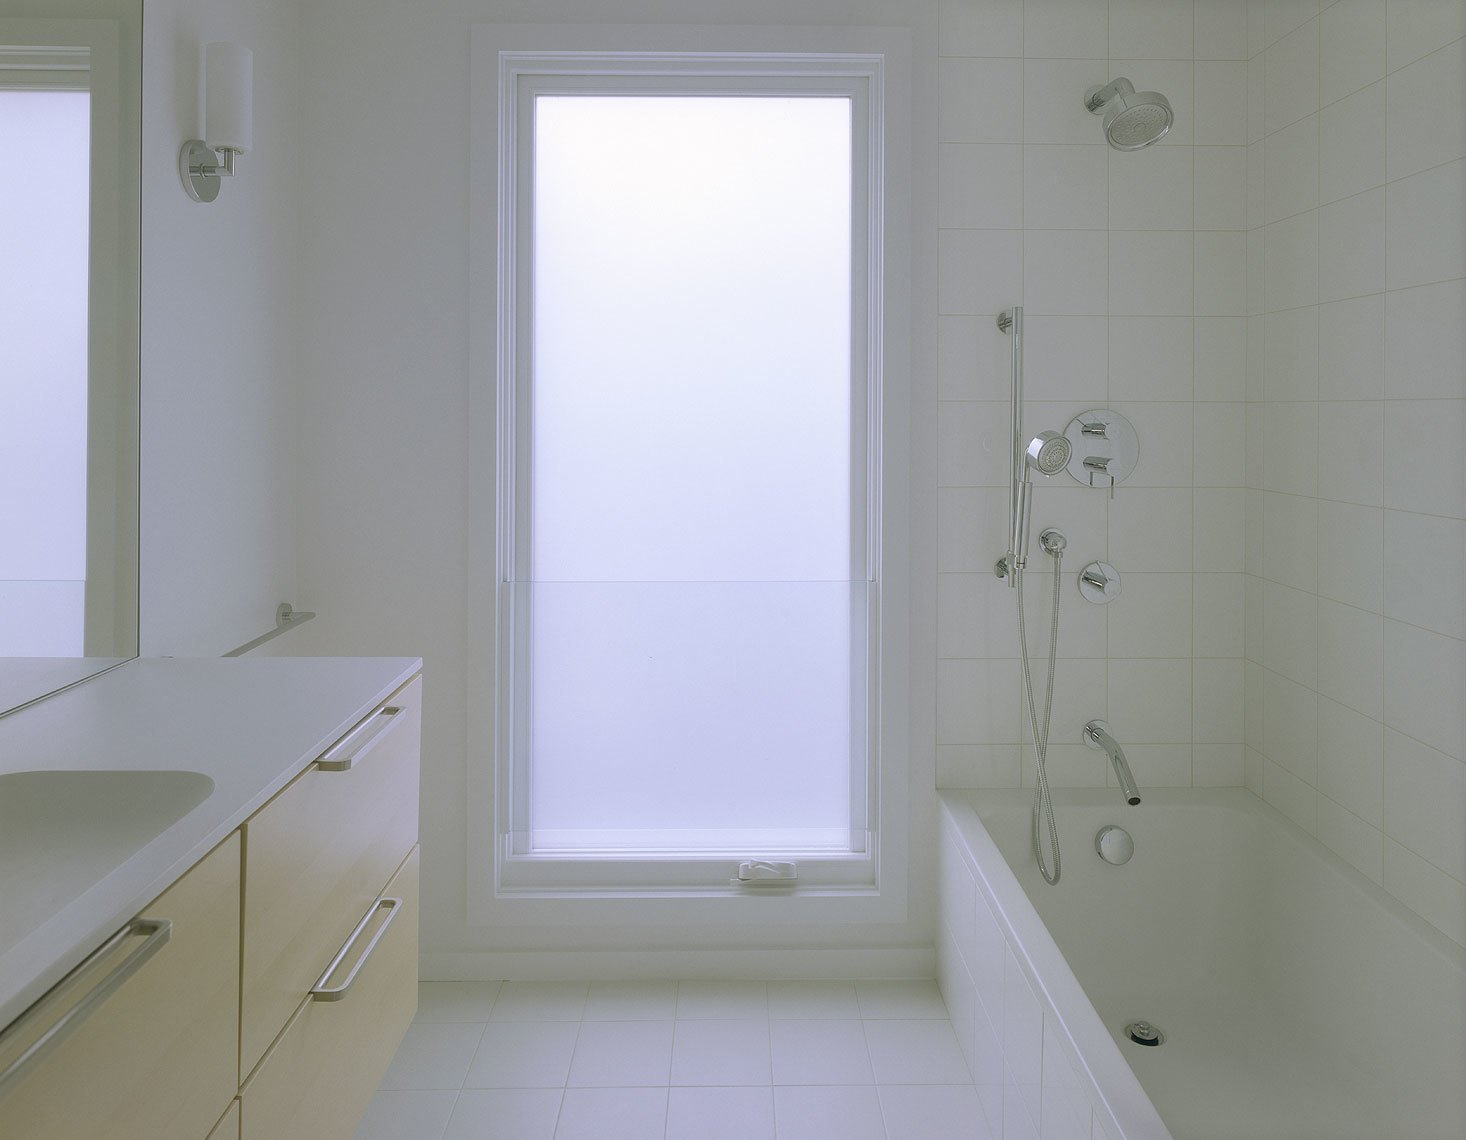 An IKEA vanity is suspended off the floor, making it easy to clean. The Spartan style and sense of space is enhanced here, as elsewhere in the home, by the oversized windows, white hues, and lack of architectural frippery or frills. Kohler shower fixtures complete the look. Photo: Atelier Waechter.  Portland's Cape Cod Remodel by Amara Holstein